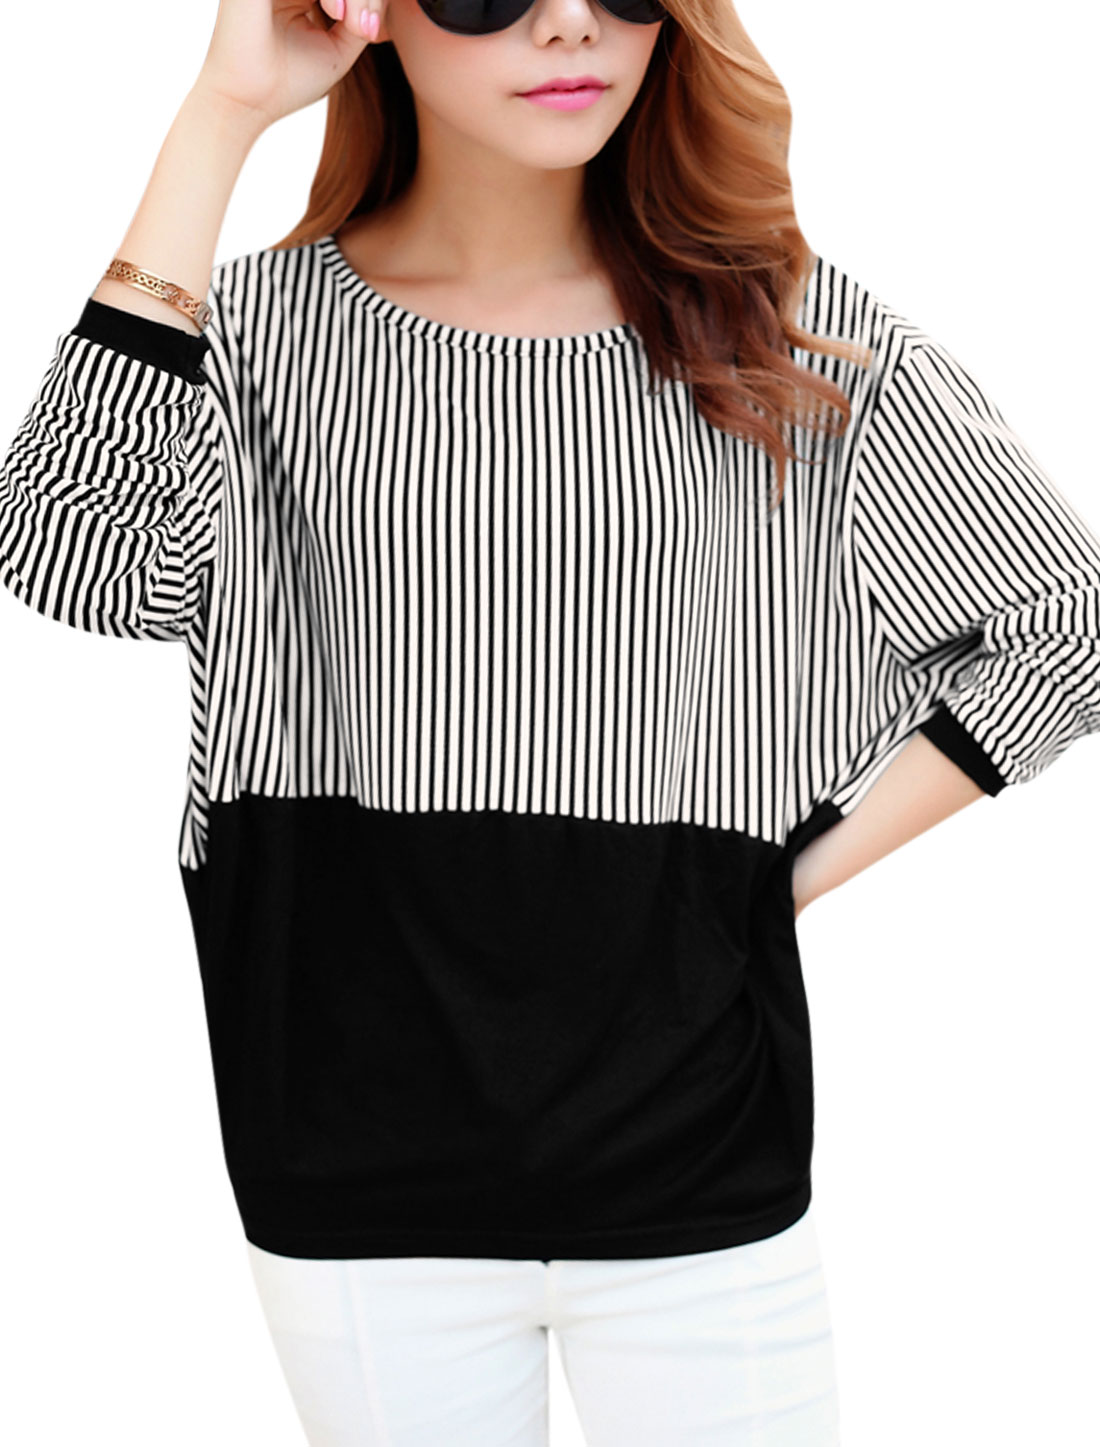 Lady Round Neck Bar Striped Long Batwing Sleeve Casual T-Shirt Black White XS